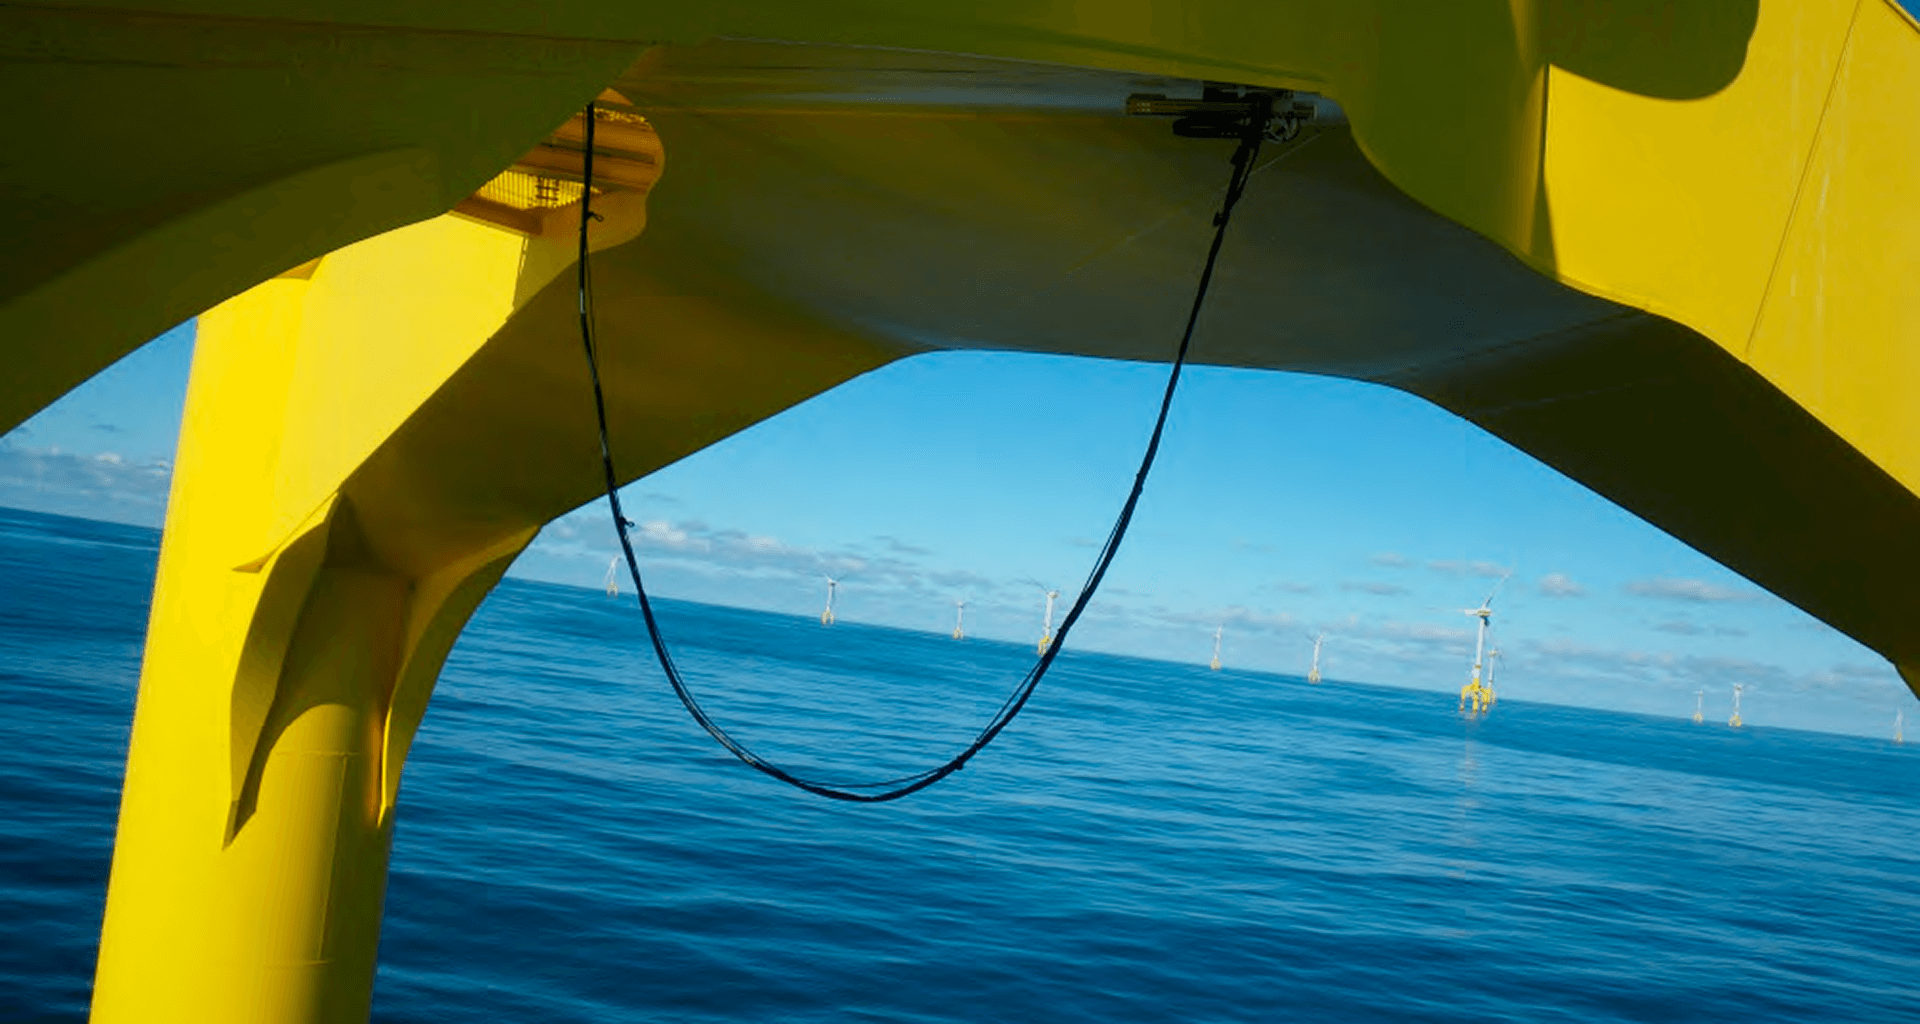 Offshore Wind Power T-joint Construction Weld